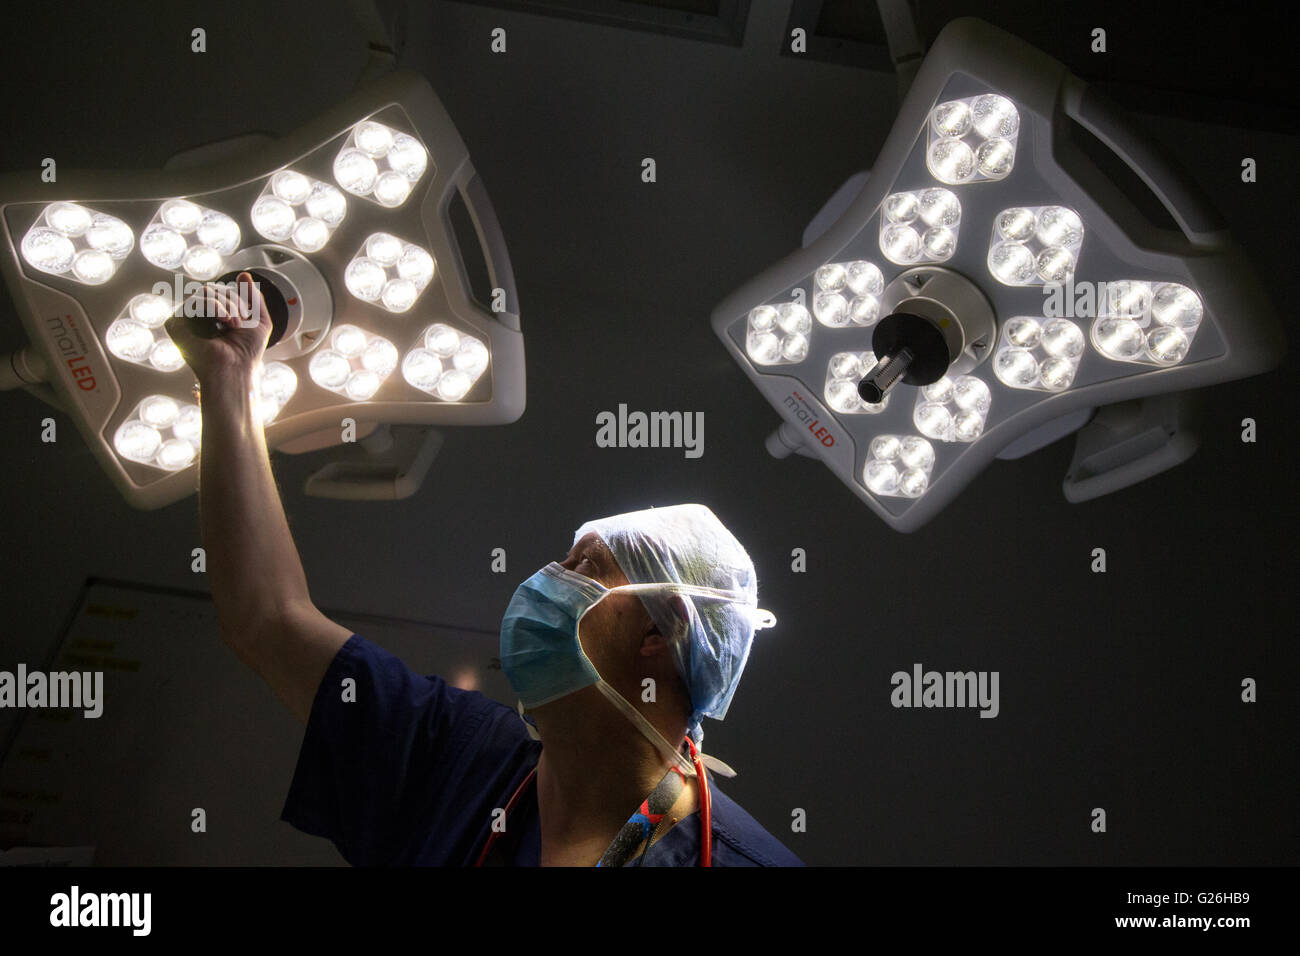 A theatre technician adjusts the lights prior to an operation. - Stock Image